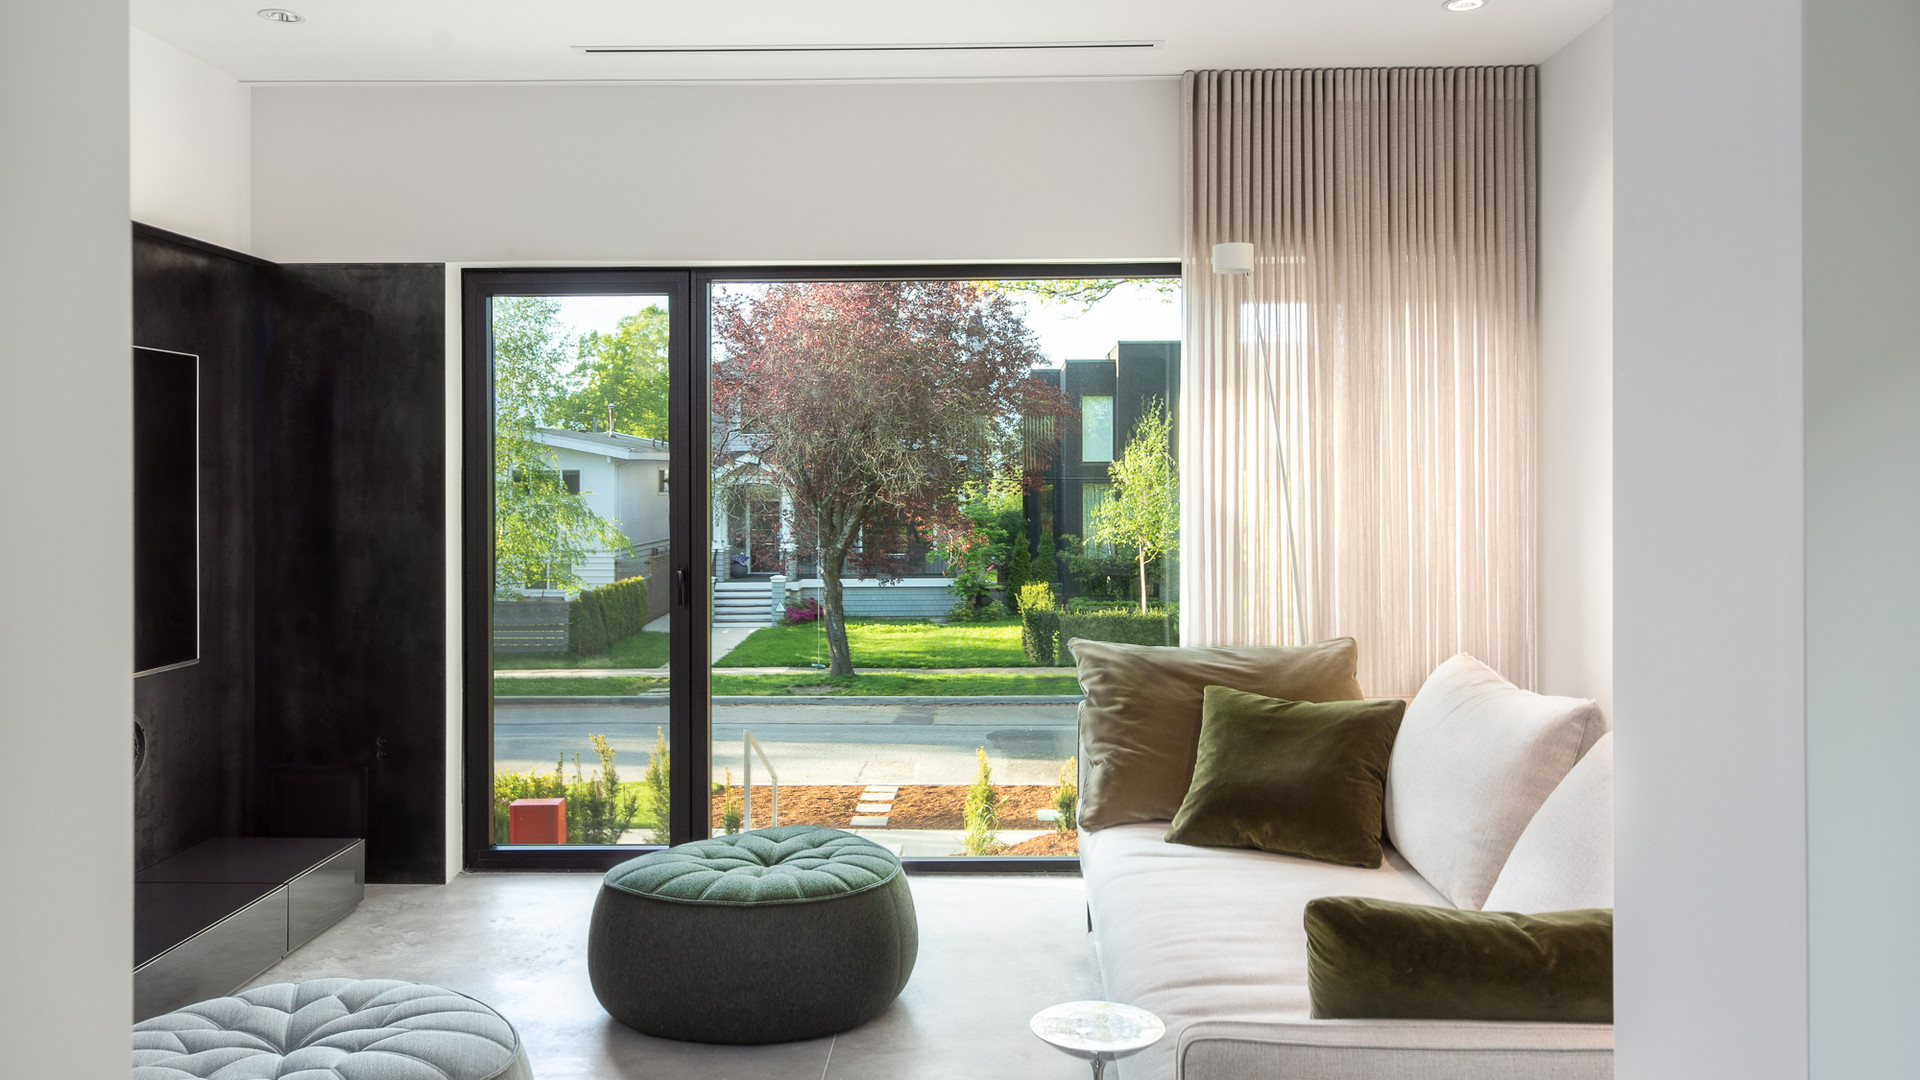 modern living room with molteni paul sofa with ligne roset ottoman and davide groppi lamp by untitled design agency